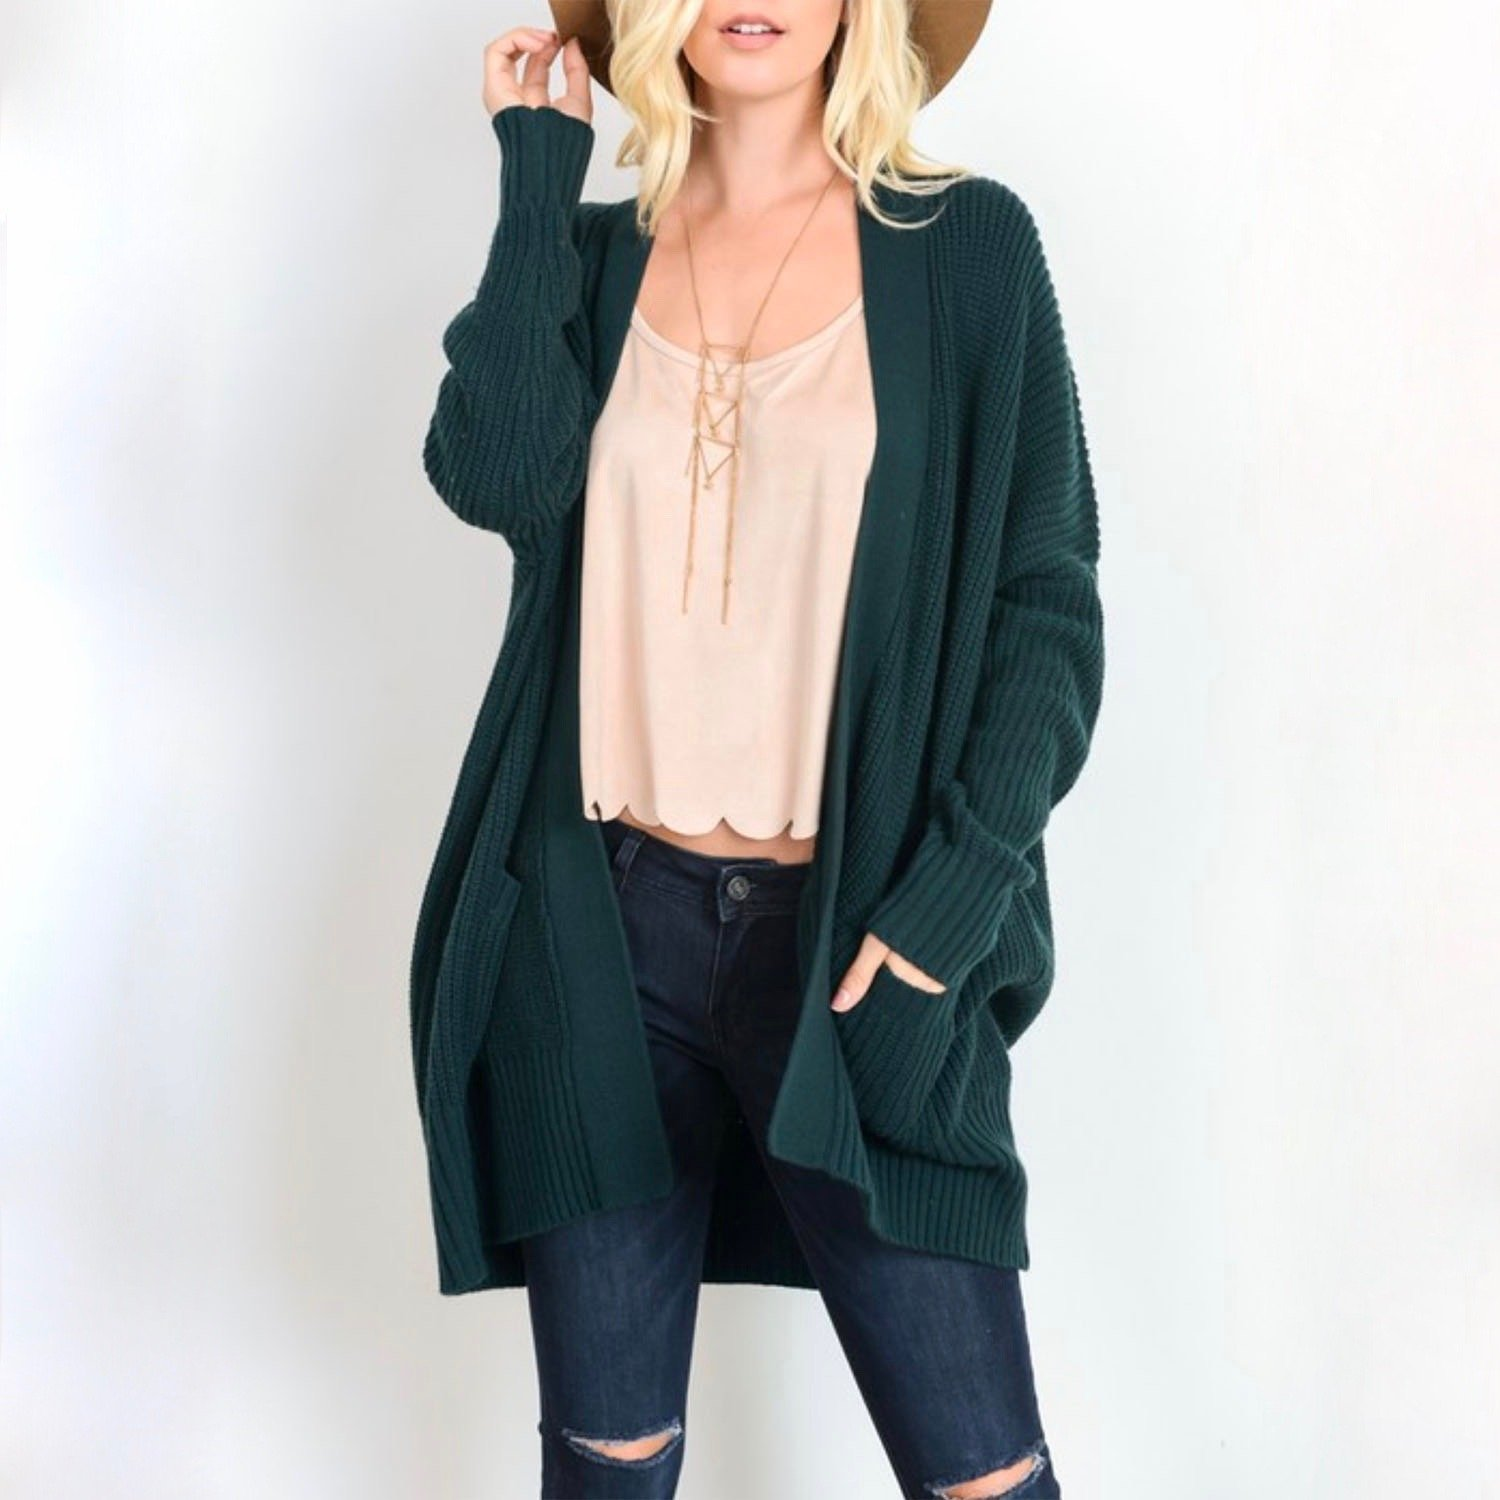 Image of Southern Comfort Open Knit Cardigan in Teal